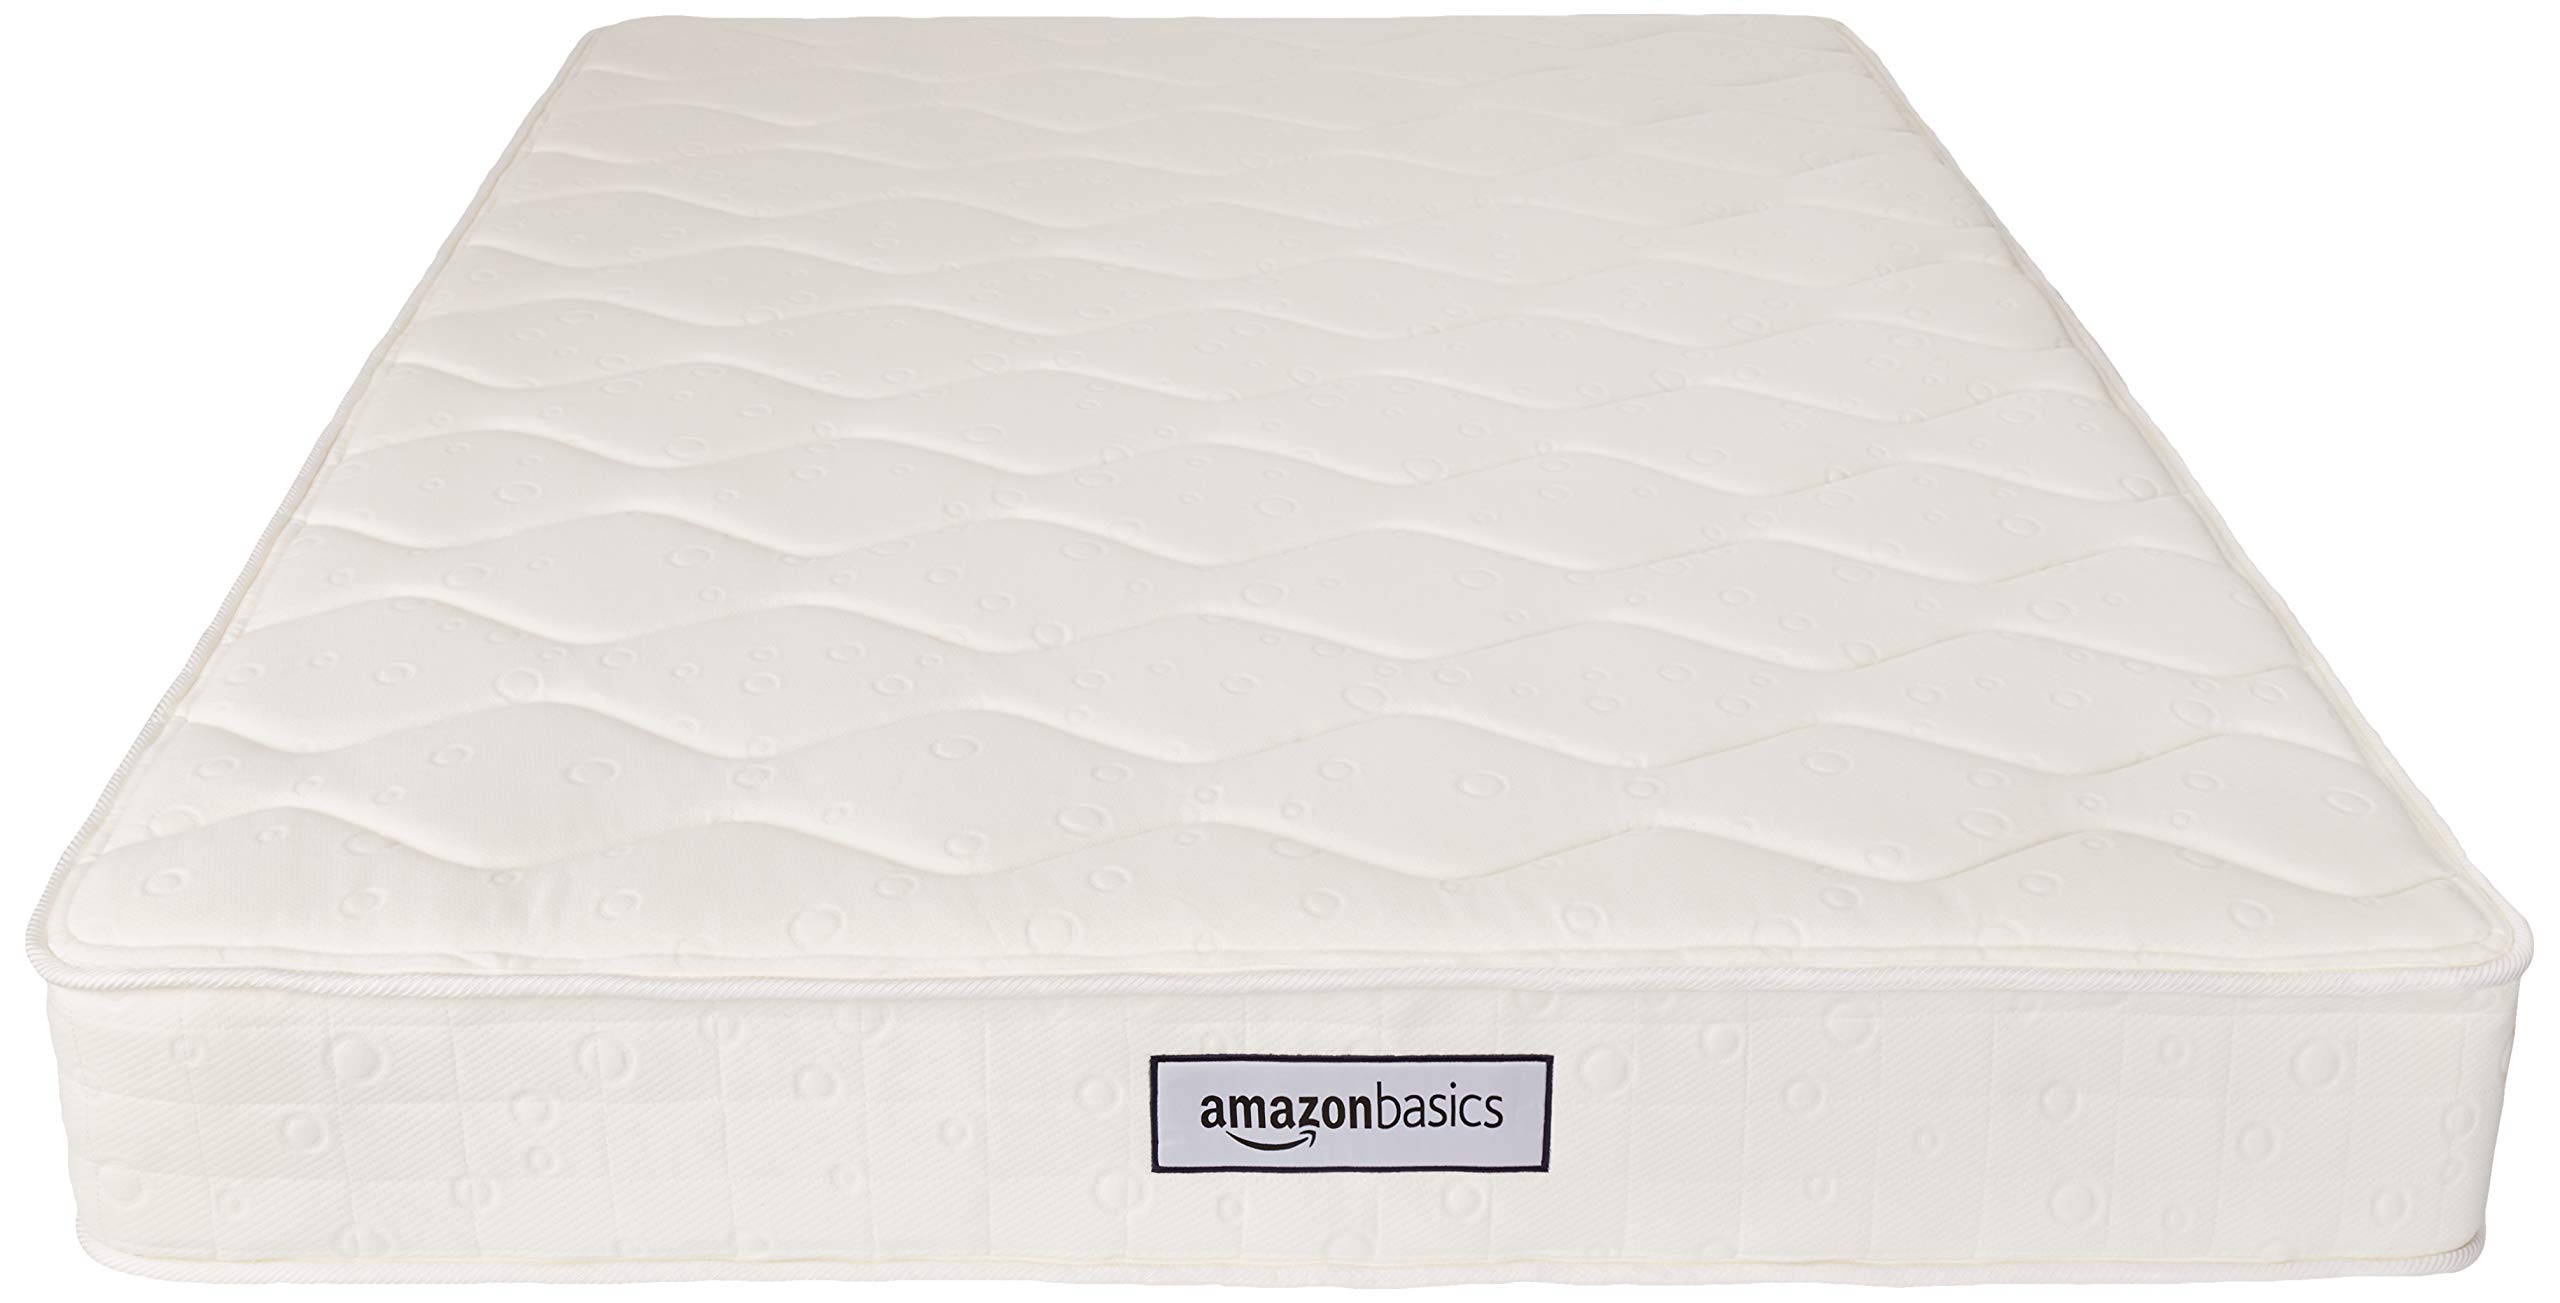 AmazonBasics Coil Mattress in a Box - Features Individual Pocket Spring for Motion Isolation, High-Density CertiPUR-US Certified Foam Layer - 8-Inch, Queen by AmazonBasics (Image #5)